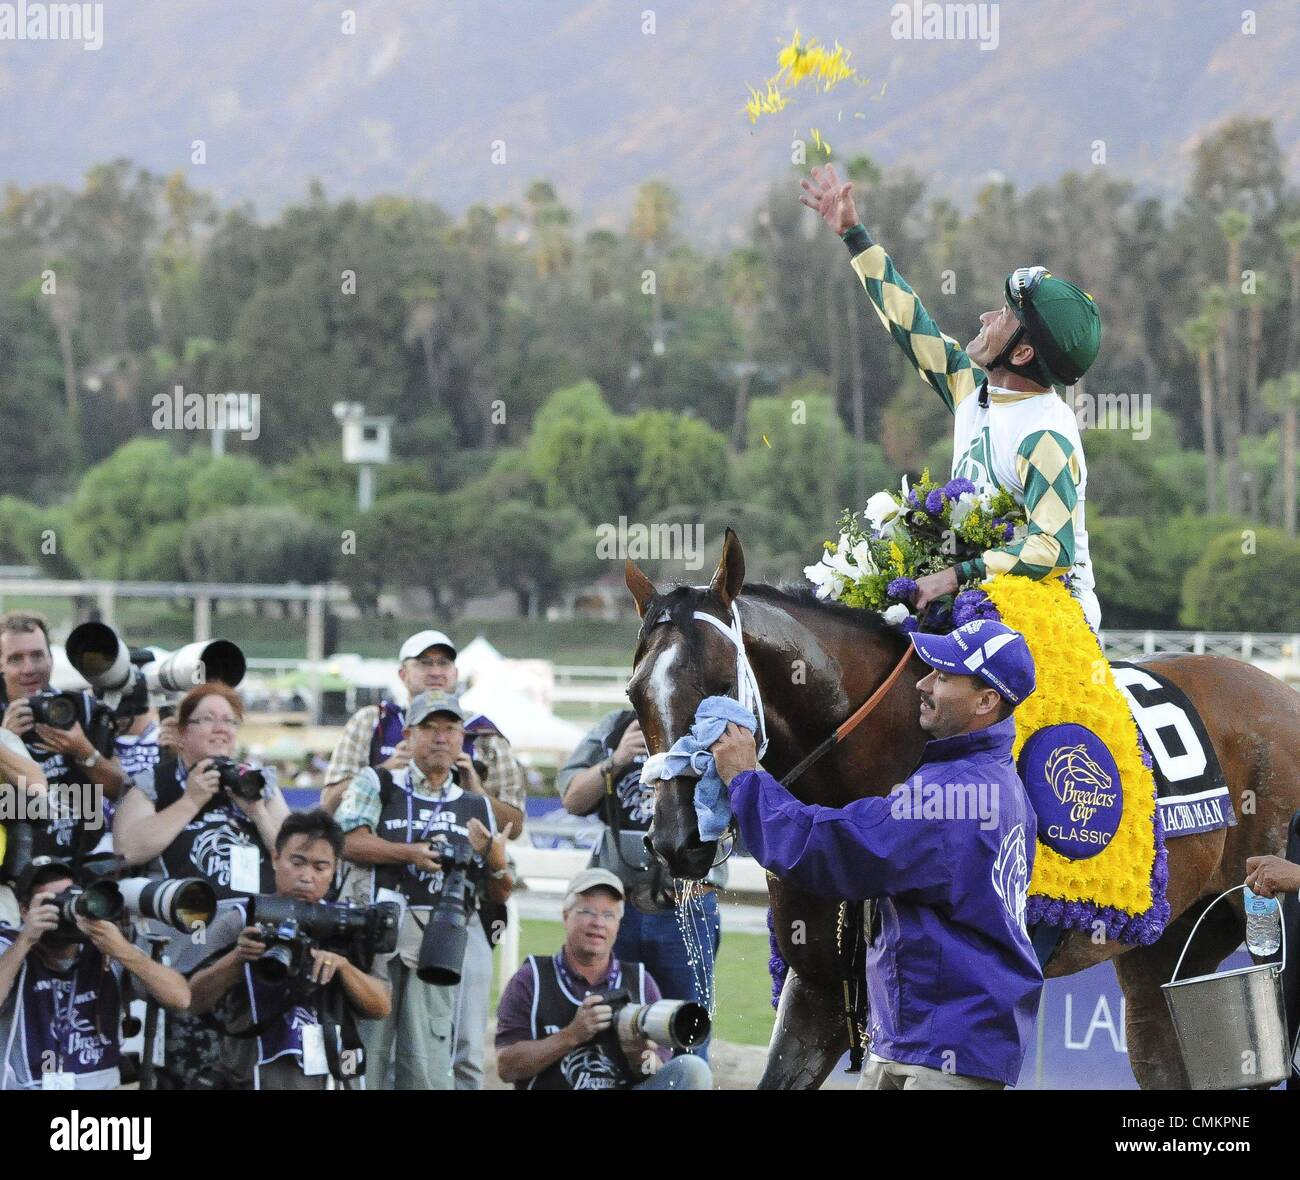 Arcadia, California, USA. 2nd Nov, 2013. Mucho Macho Man ridden by GARY STEVENS, and trained by Kathy Ritvo, wins - Stock Image